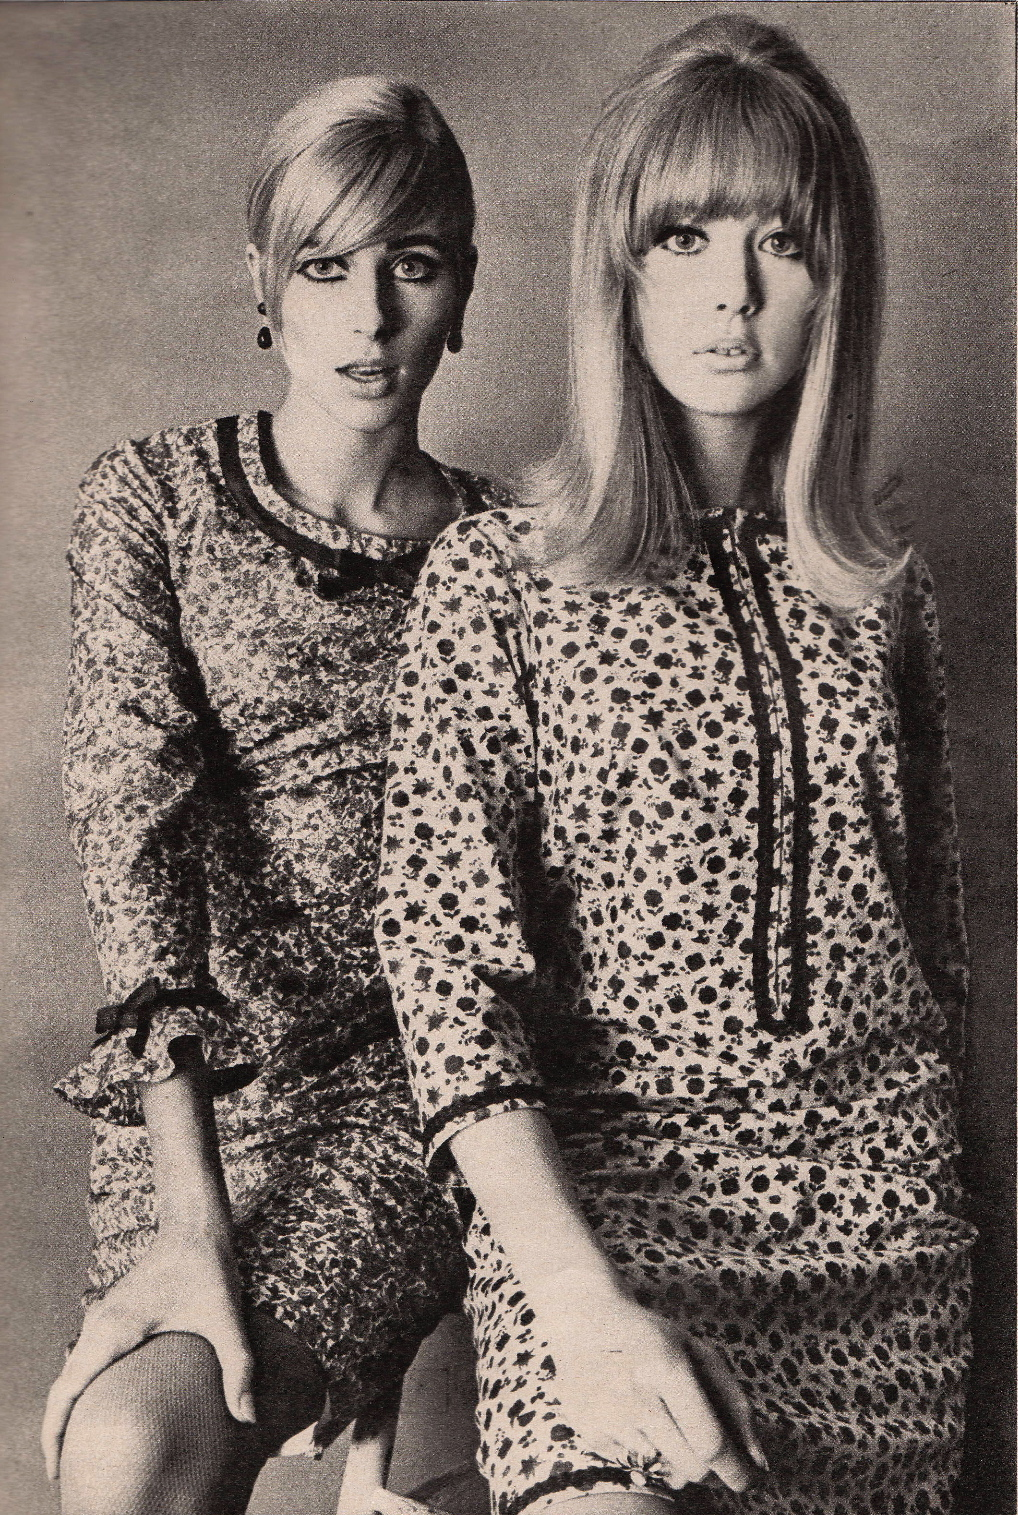 SWEET JANE: Vanity Fair 1965..Pattie Boyd and Jill Kennington